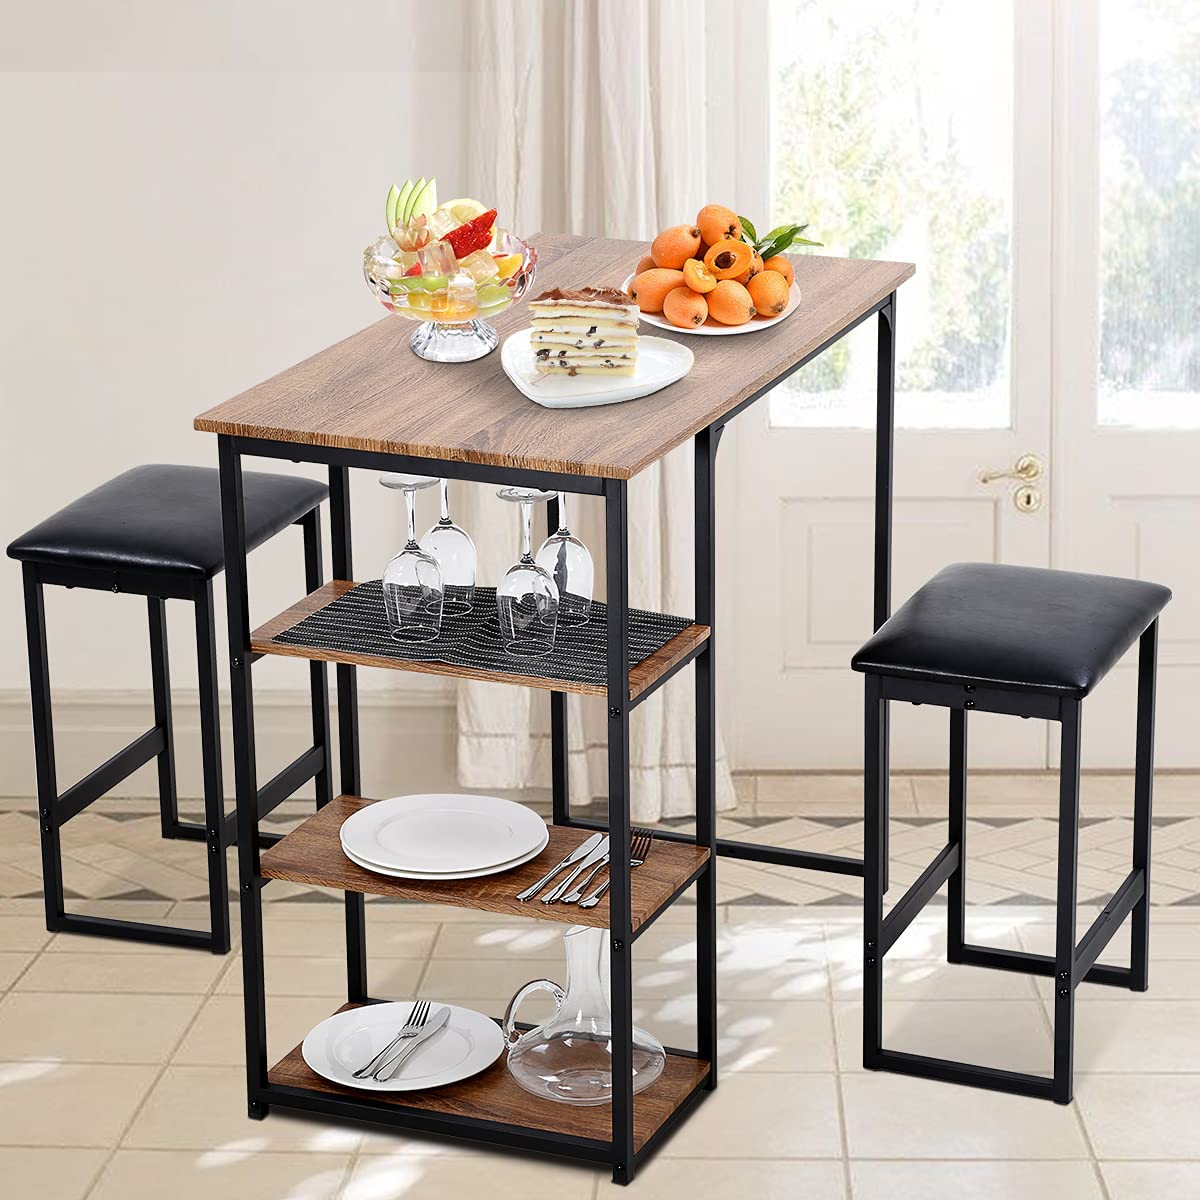 3 Piece Kitchen Dining Table, Modern Pub Bar Table and Chairs Set Breakfast Counter Height Set for Small Spaces Dinette Table with Metal Frame, 2 Chairs Stools for Dining, Home Furniture, Brown